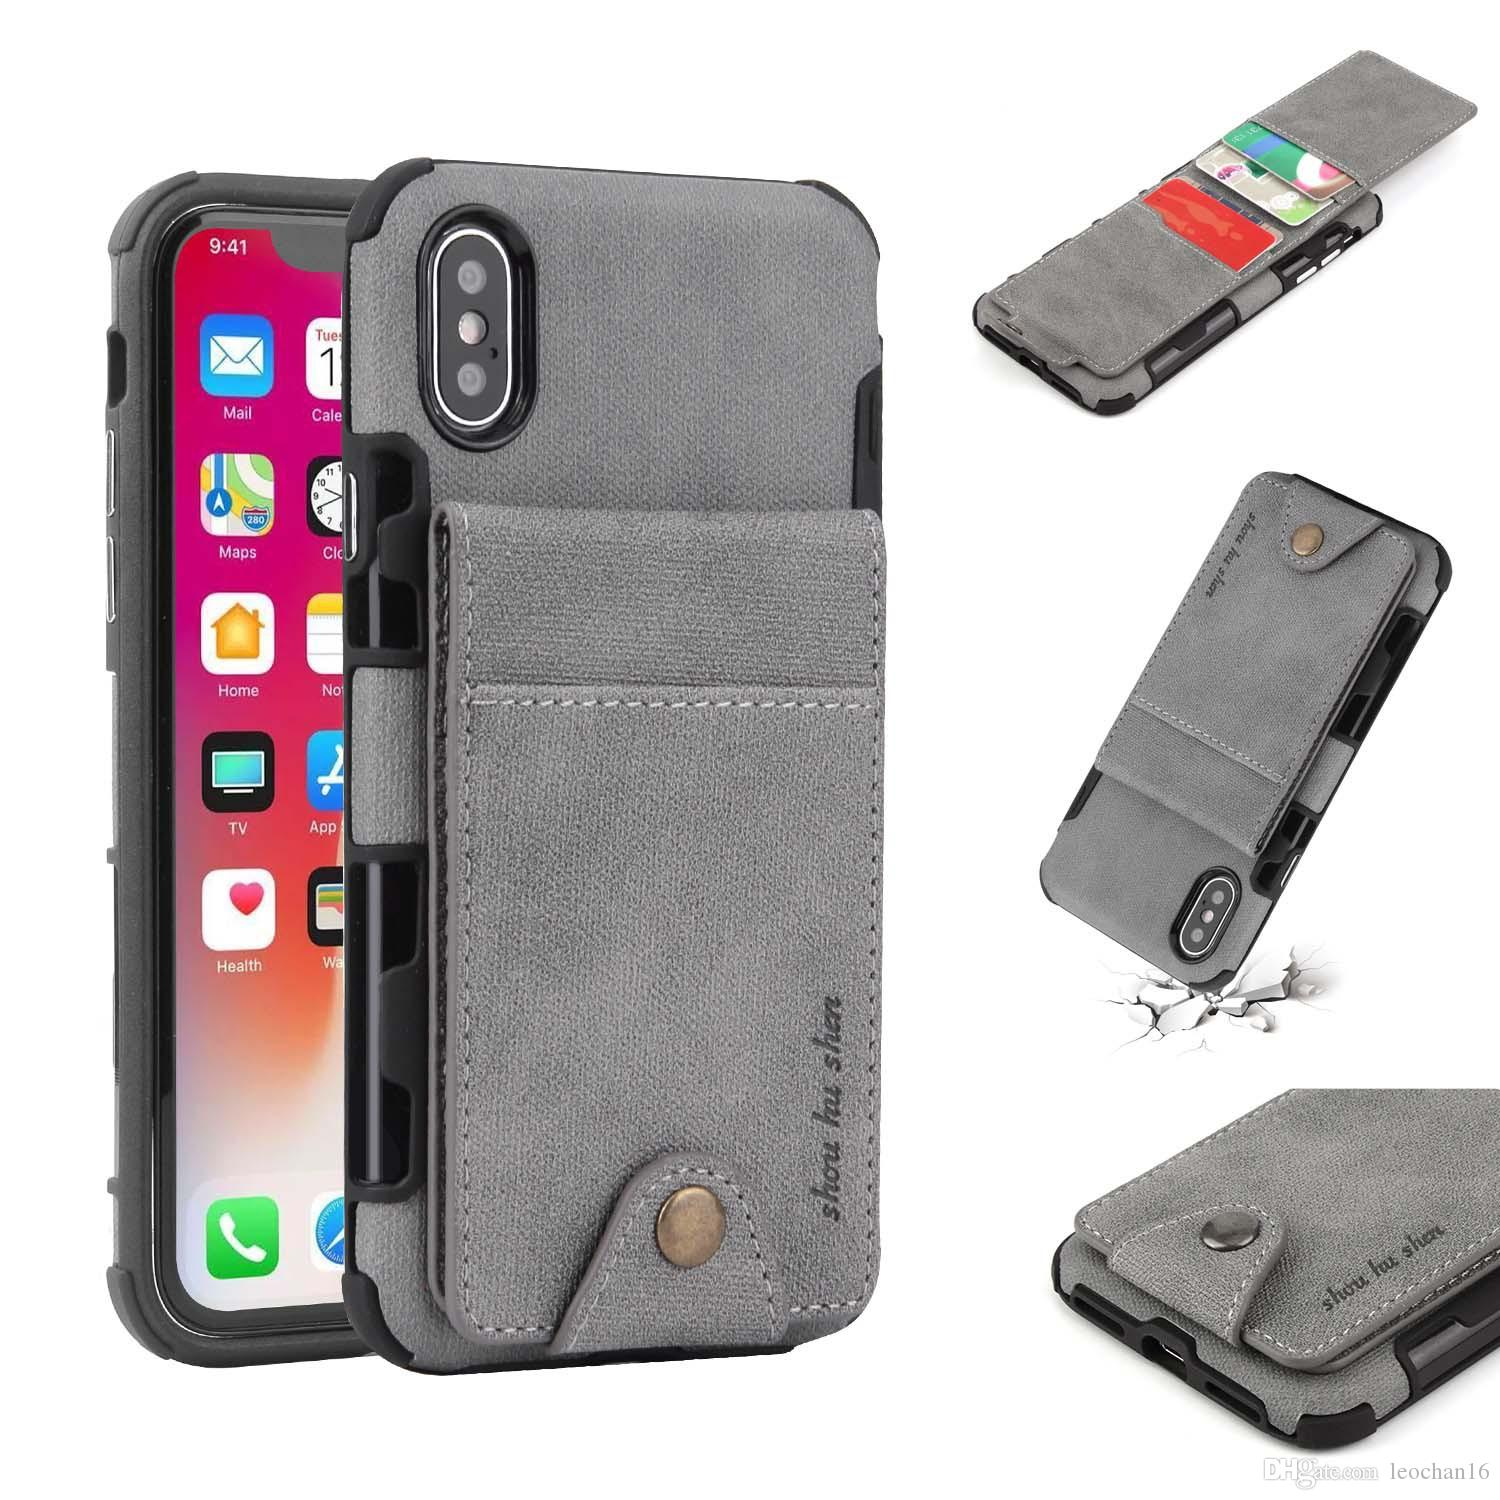 finest selection 3cdb9 4404e Up And Down Leather Wallet Clutch Shell Flip Cover Multi Functional Phone  Case For IPhone X 6 7 8 Samsung S8 S9 S8+ S9+ Cell Phone Case Wholesale ...